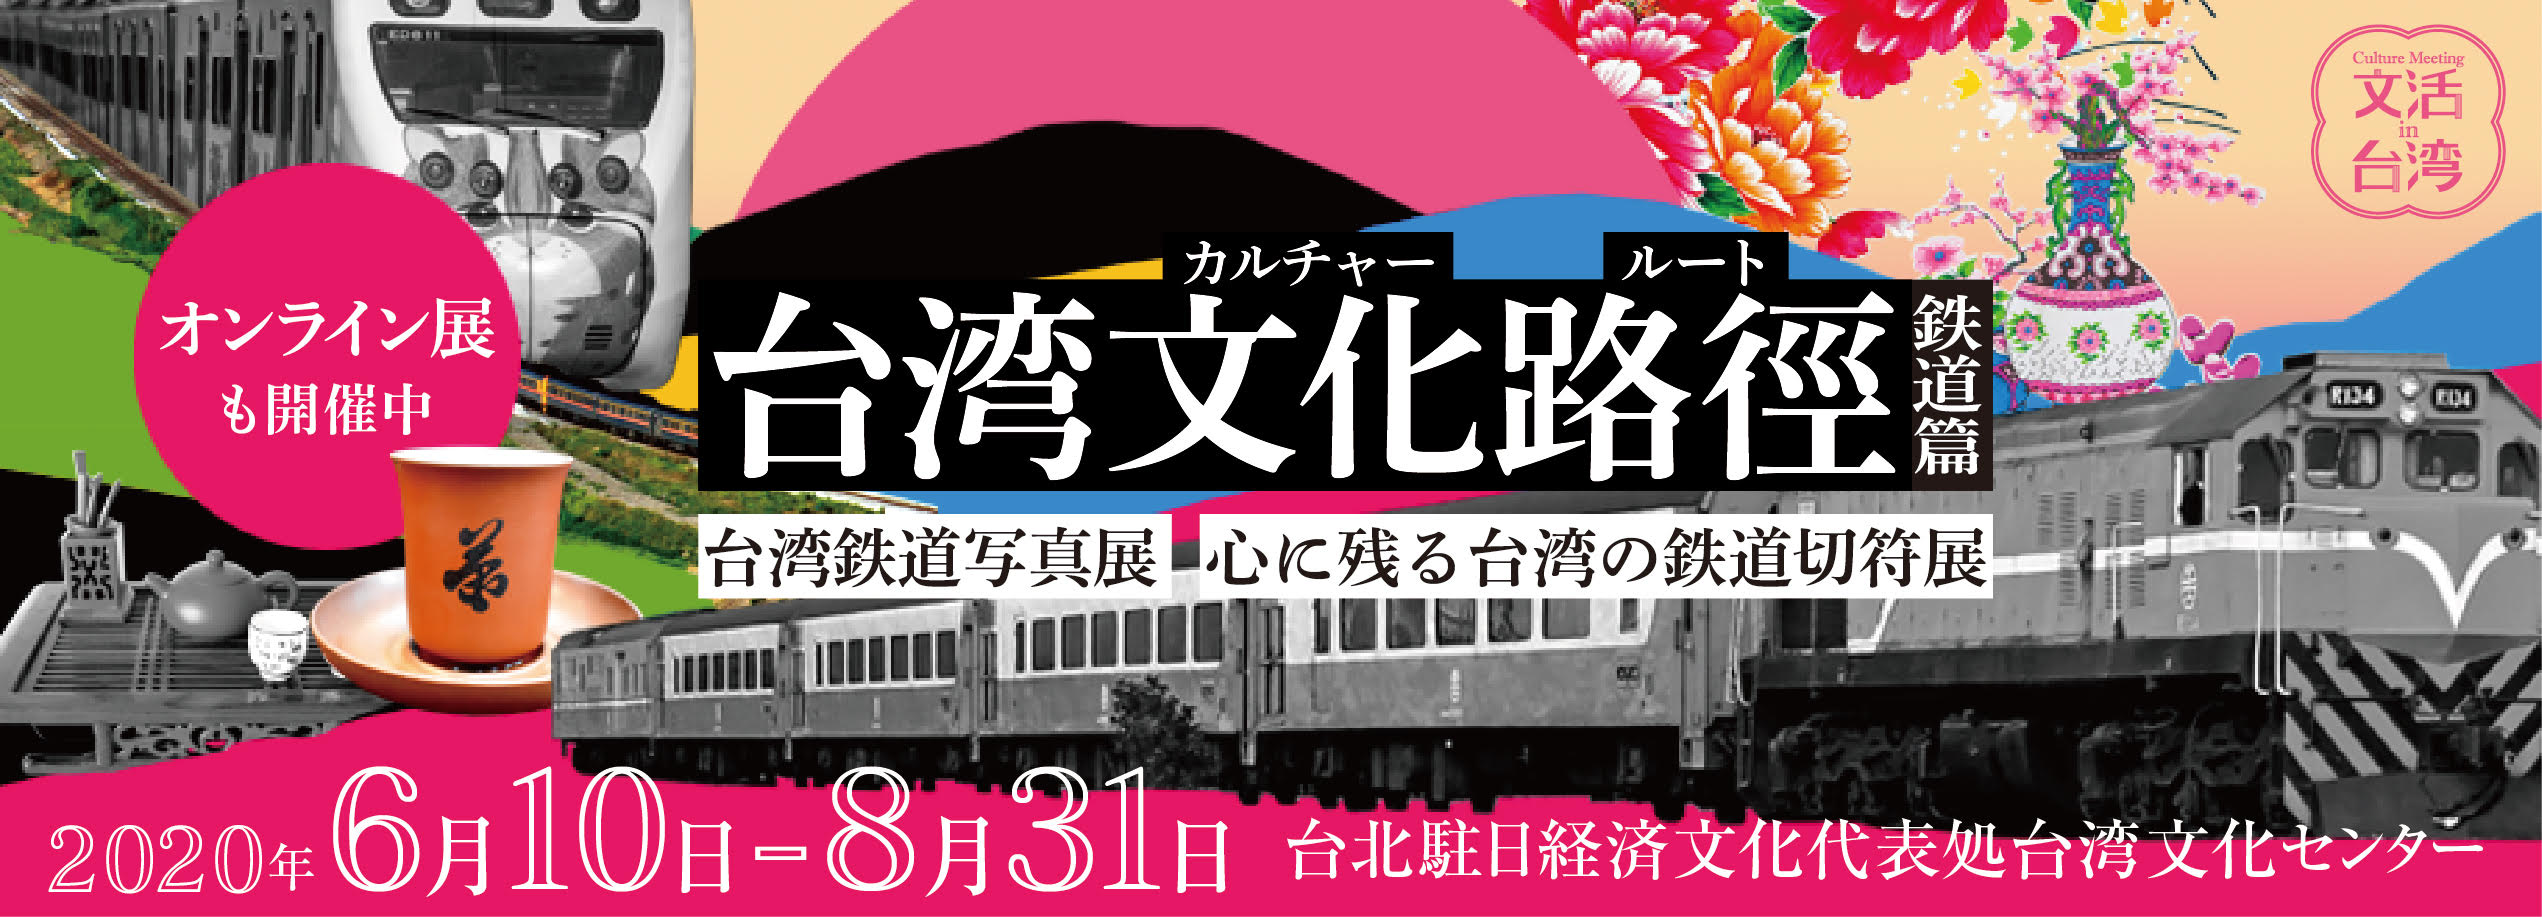 -Culture Meeting 文活 in 台湾-文化路徑 鉄道編オンライン展示